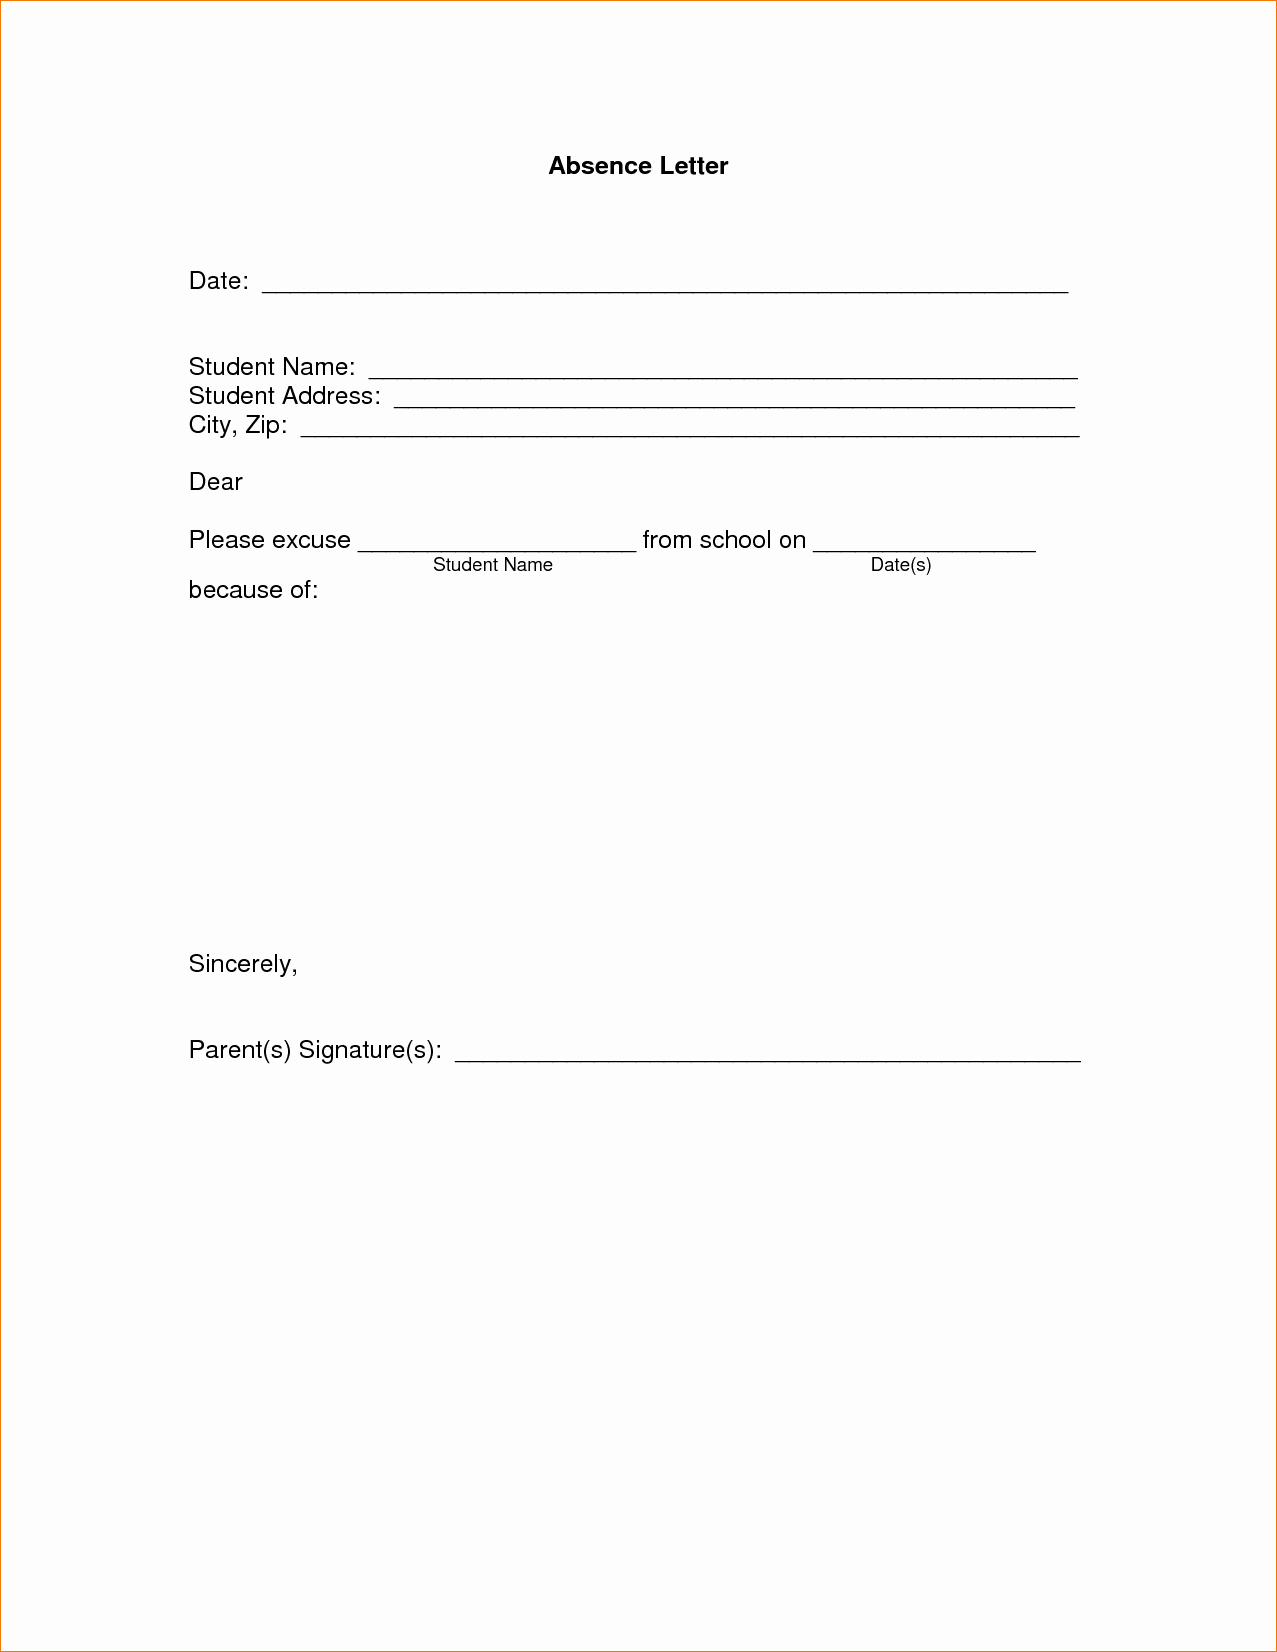 Absence From School Letter Template Elegant 11 Absence Excuse Letteragenda Template Sample